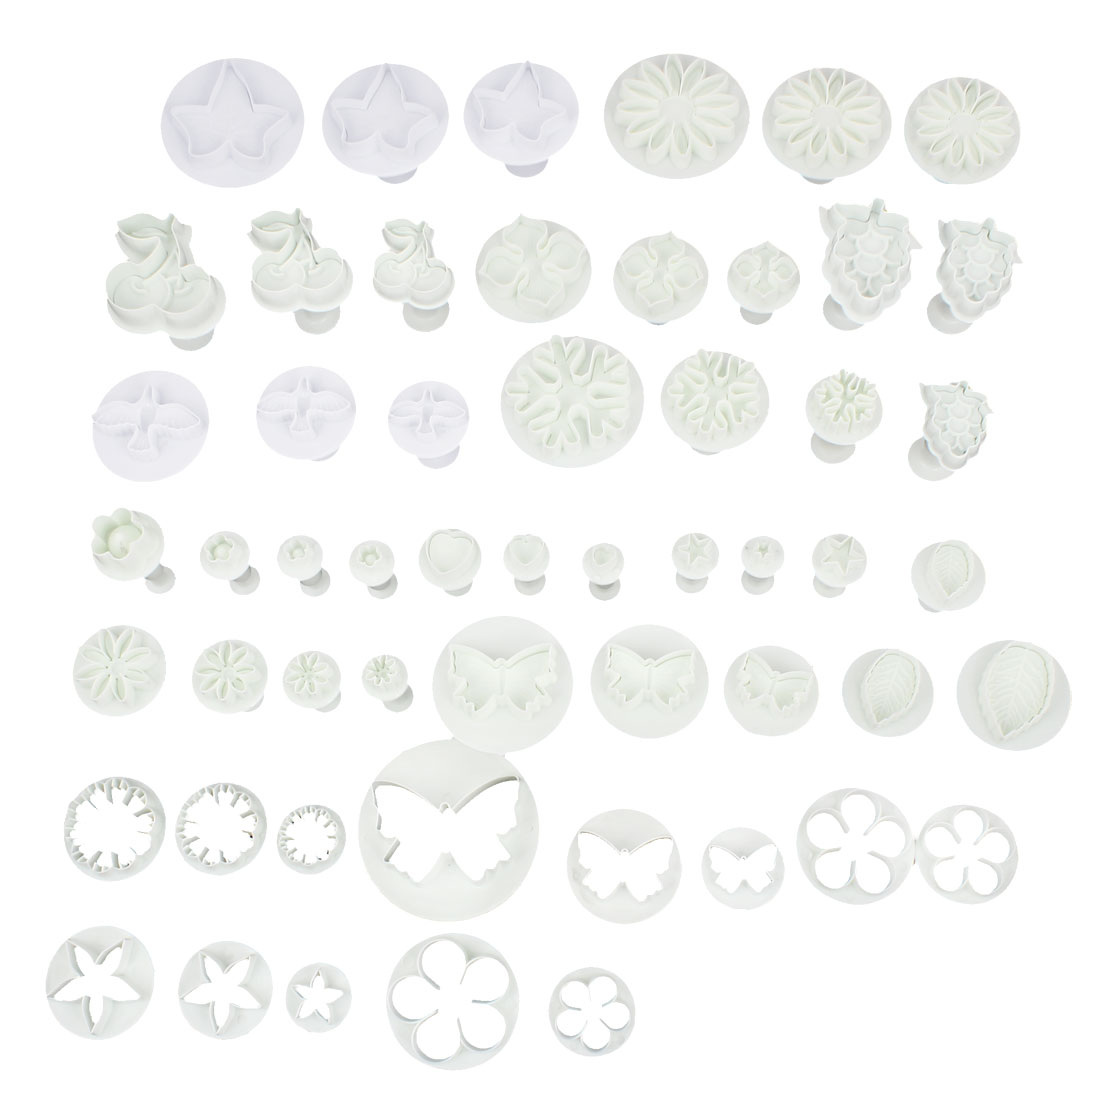 Fondant Cake Cookie Flower Decorating Plunger Cutter Mold Icing DIY Tool 70 in 1